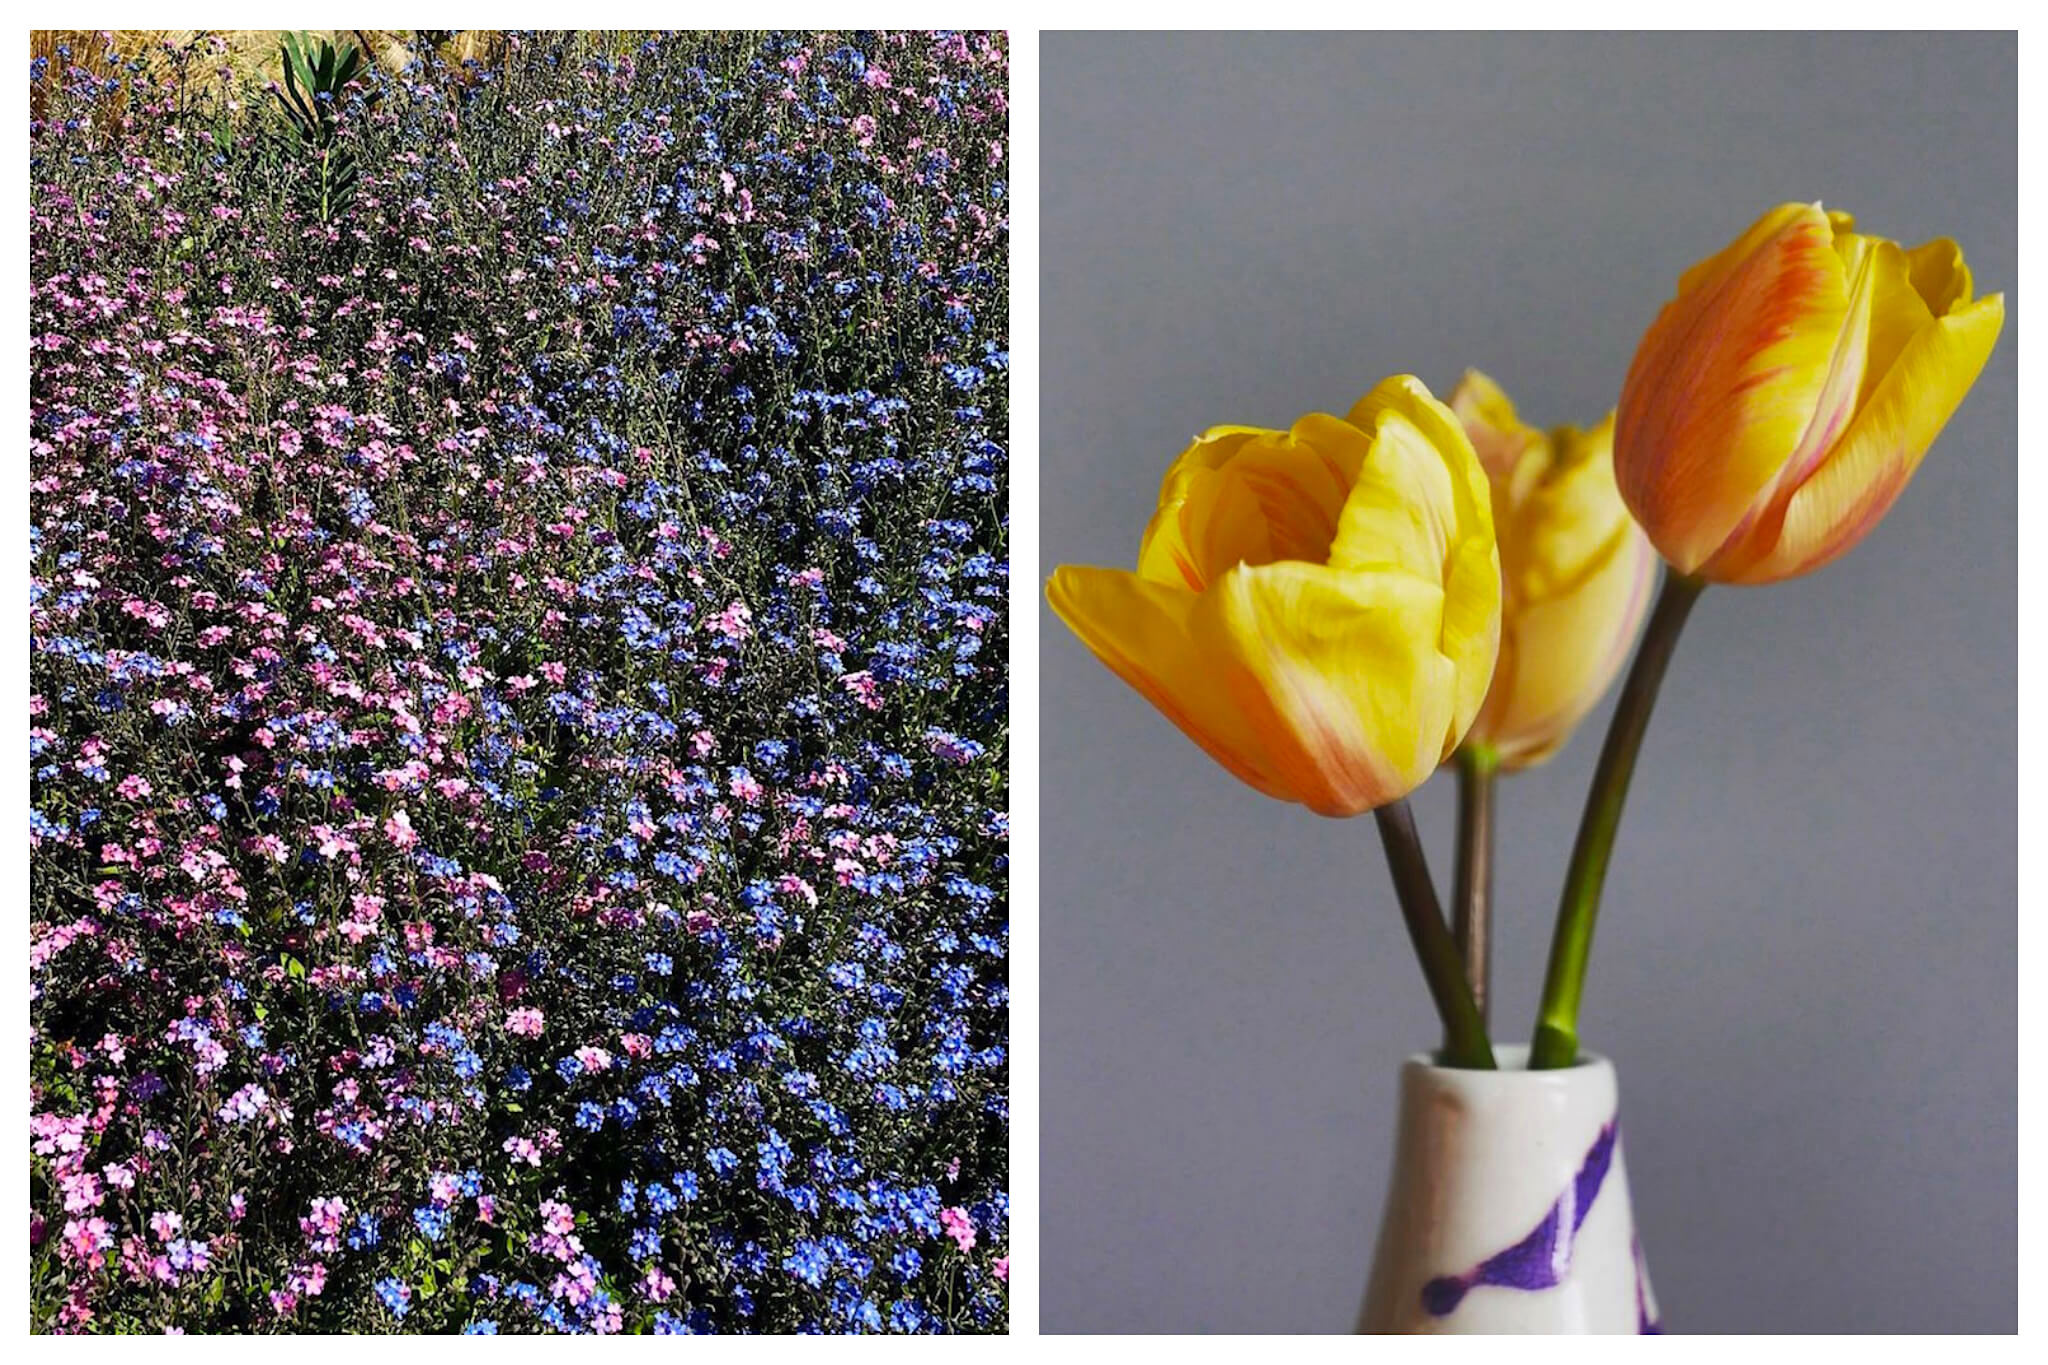 Left: A field of purple flowers grows in the spring at Ferme Florale, Right: A vase of bright yellow tulips from Ferme Florale.